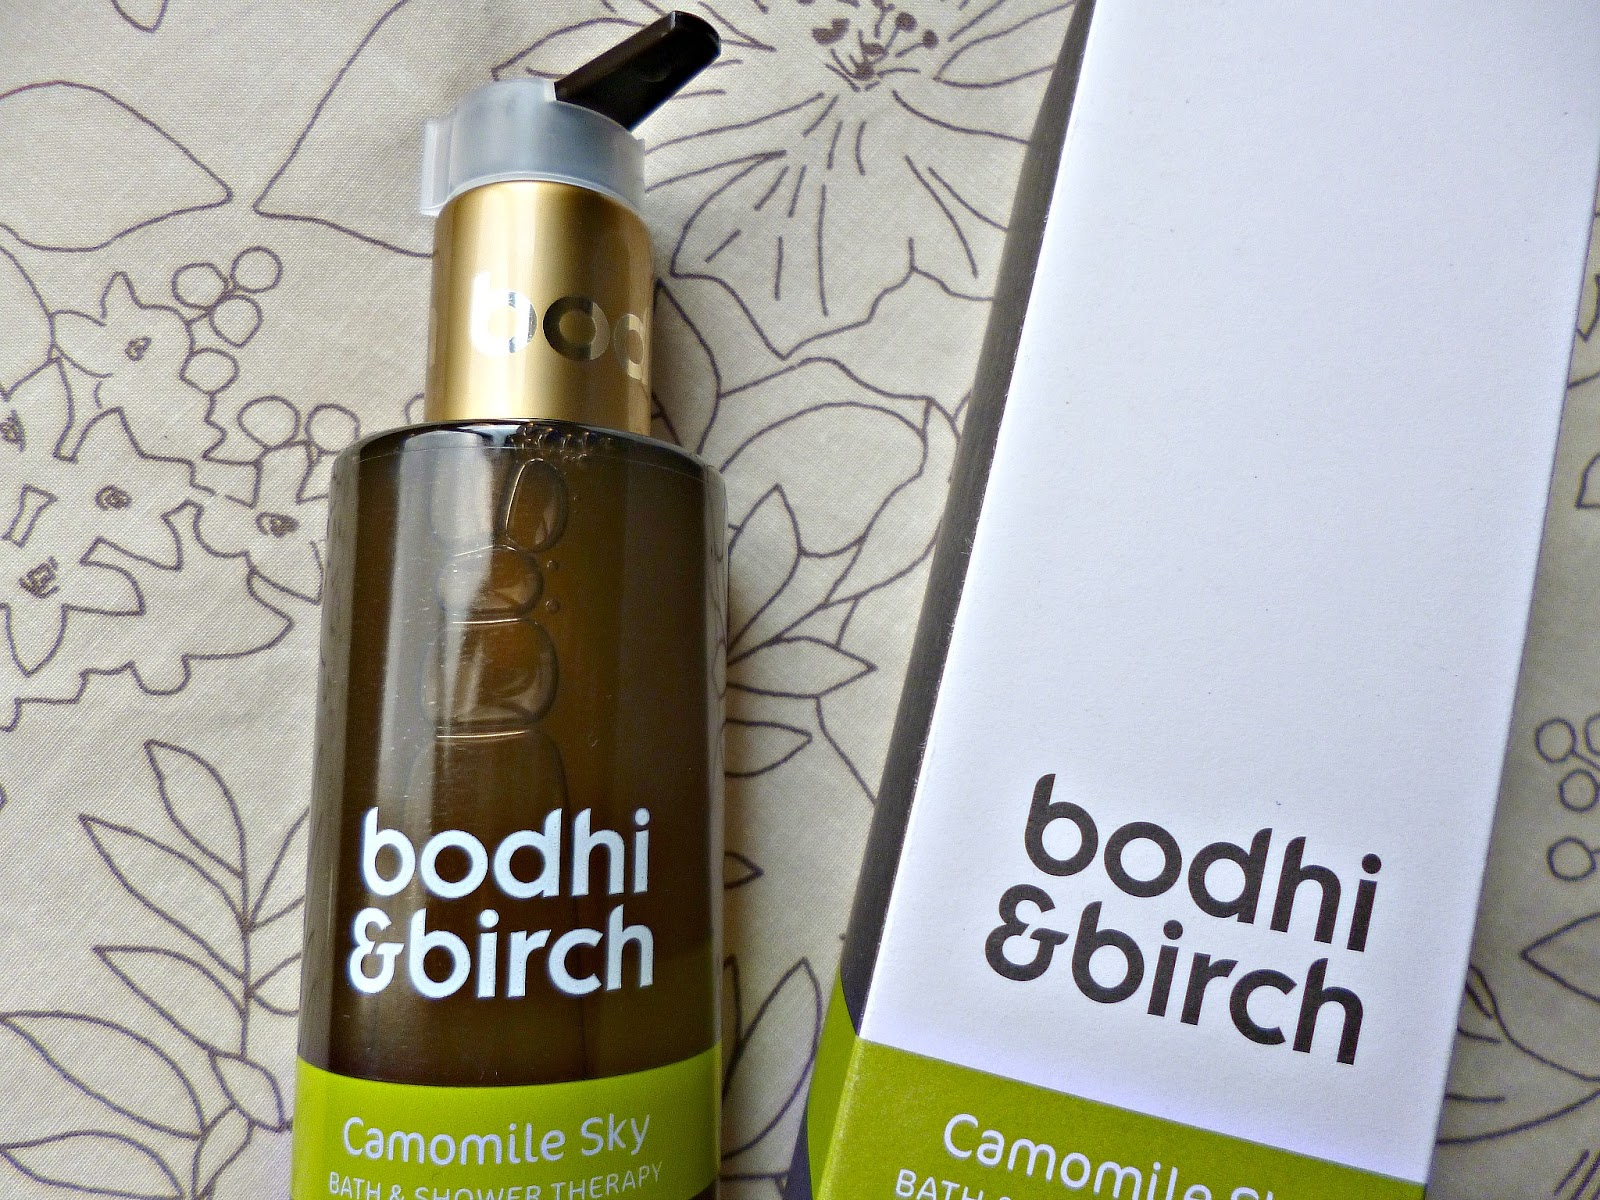 New from Bodhi and Birch – Camomile sky bath and shower therapy